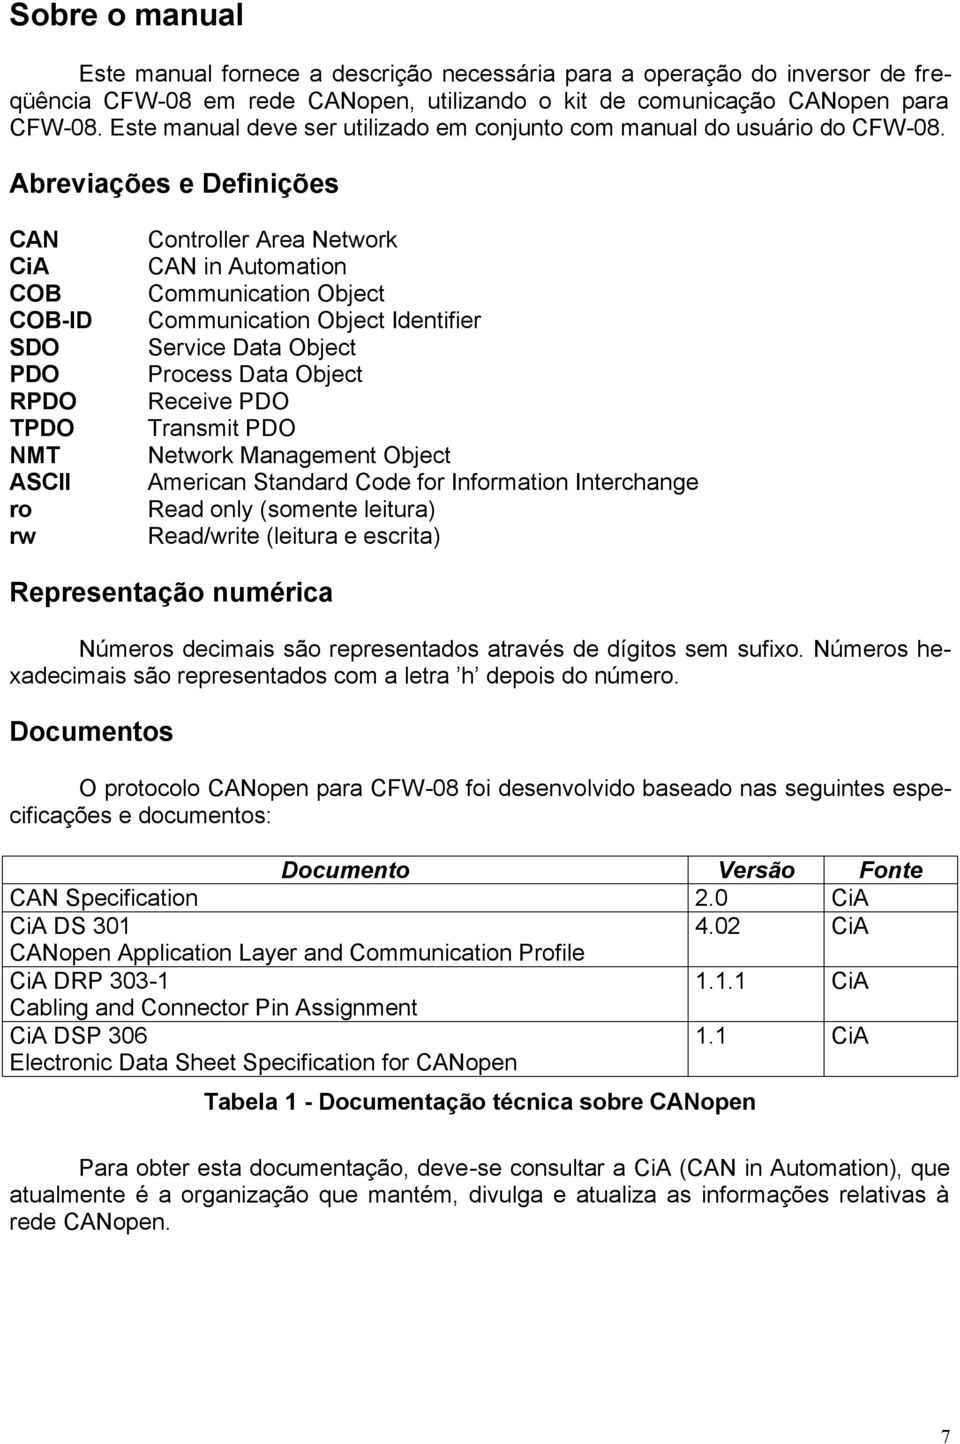 Abreviações e Definições CAN CiA COB COB-ID SDO PDO RPDO TPDO NMT ASCII ro rw Controller Area Network CAN in Automation Communication Object Communication Object Identifier Service Data Object